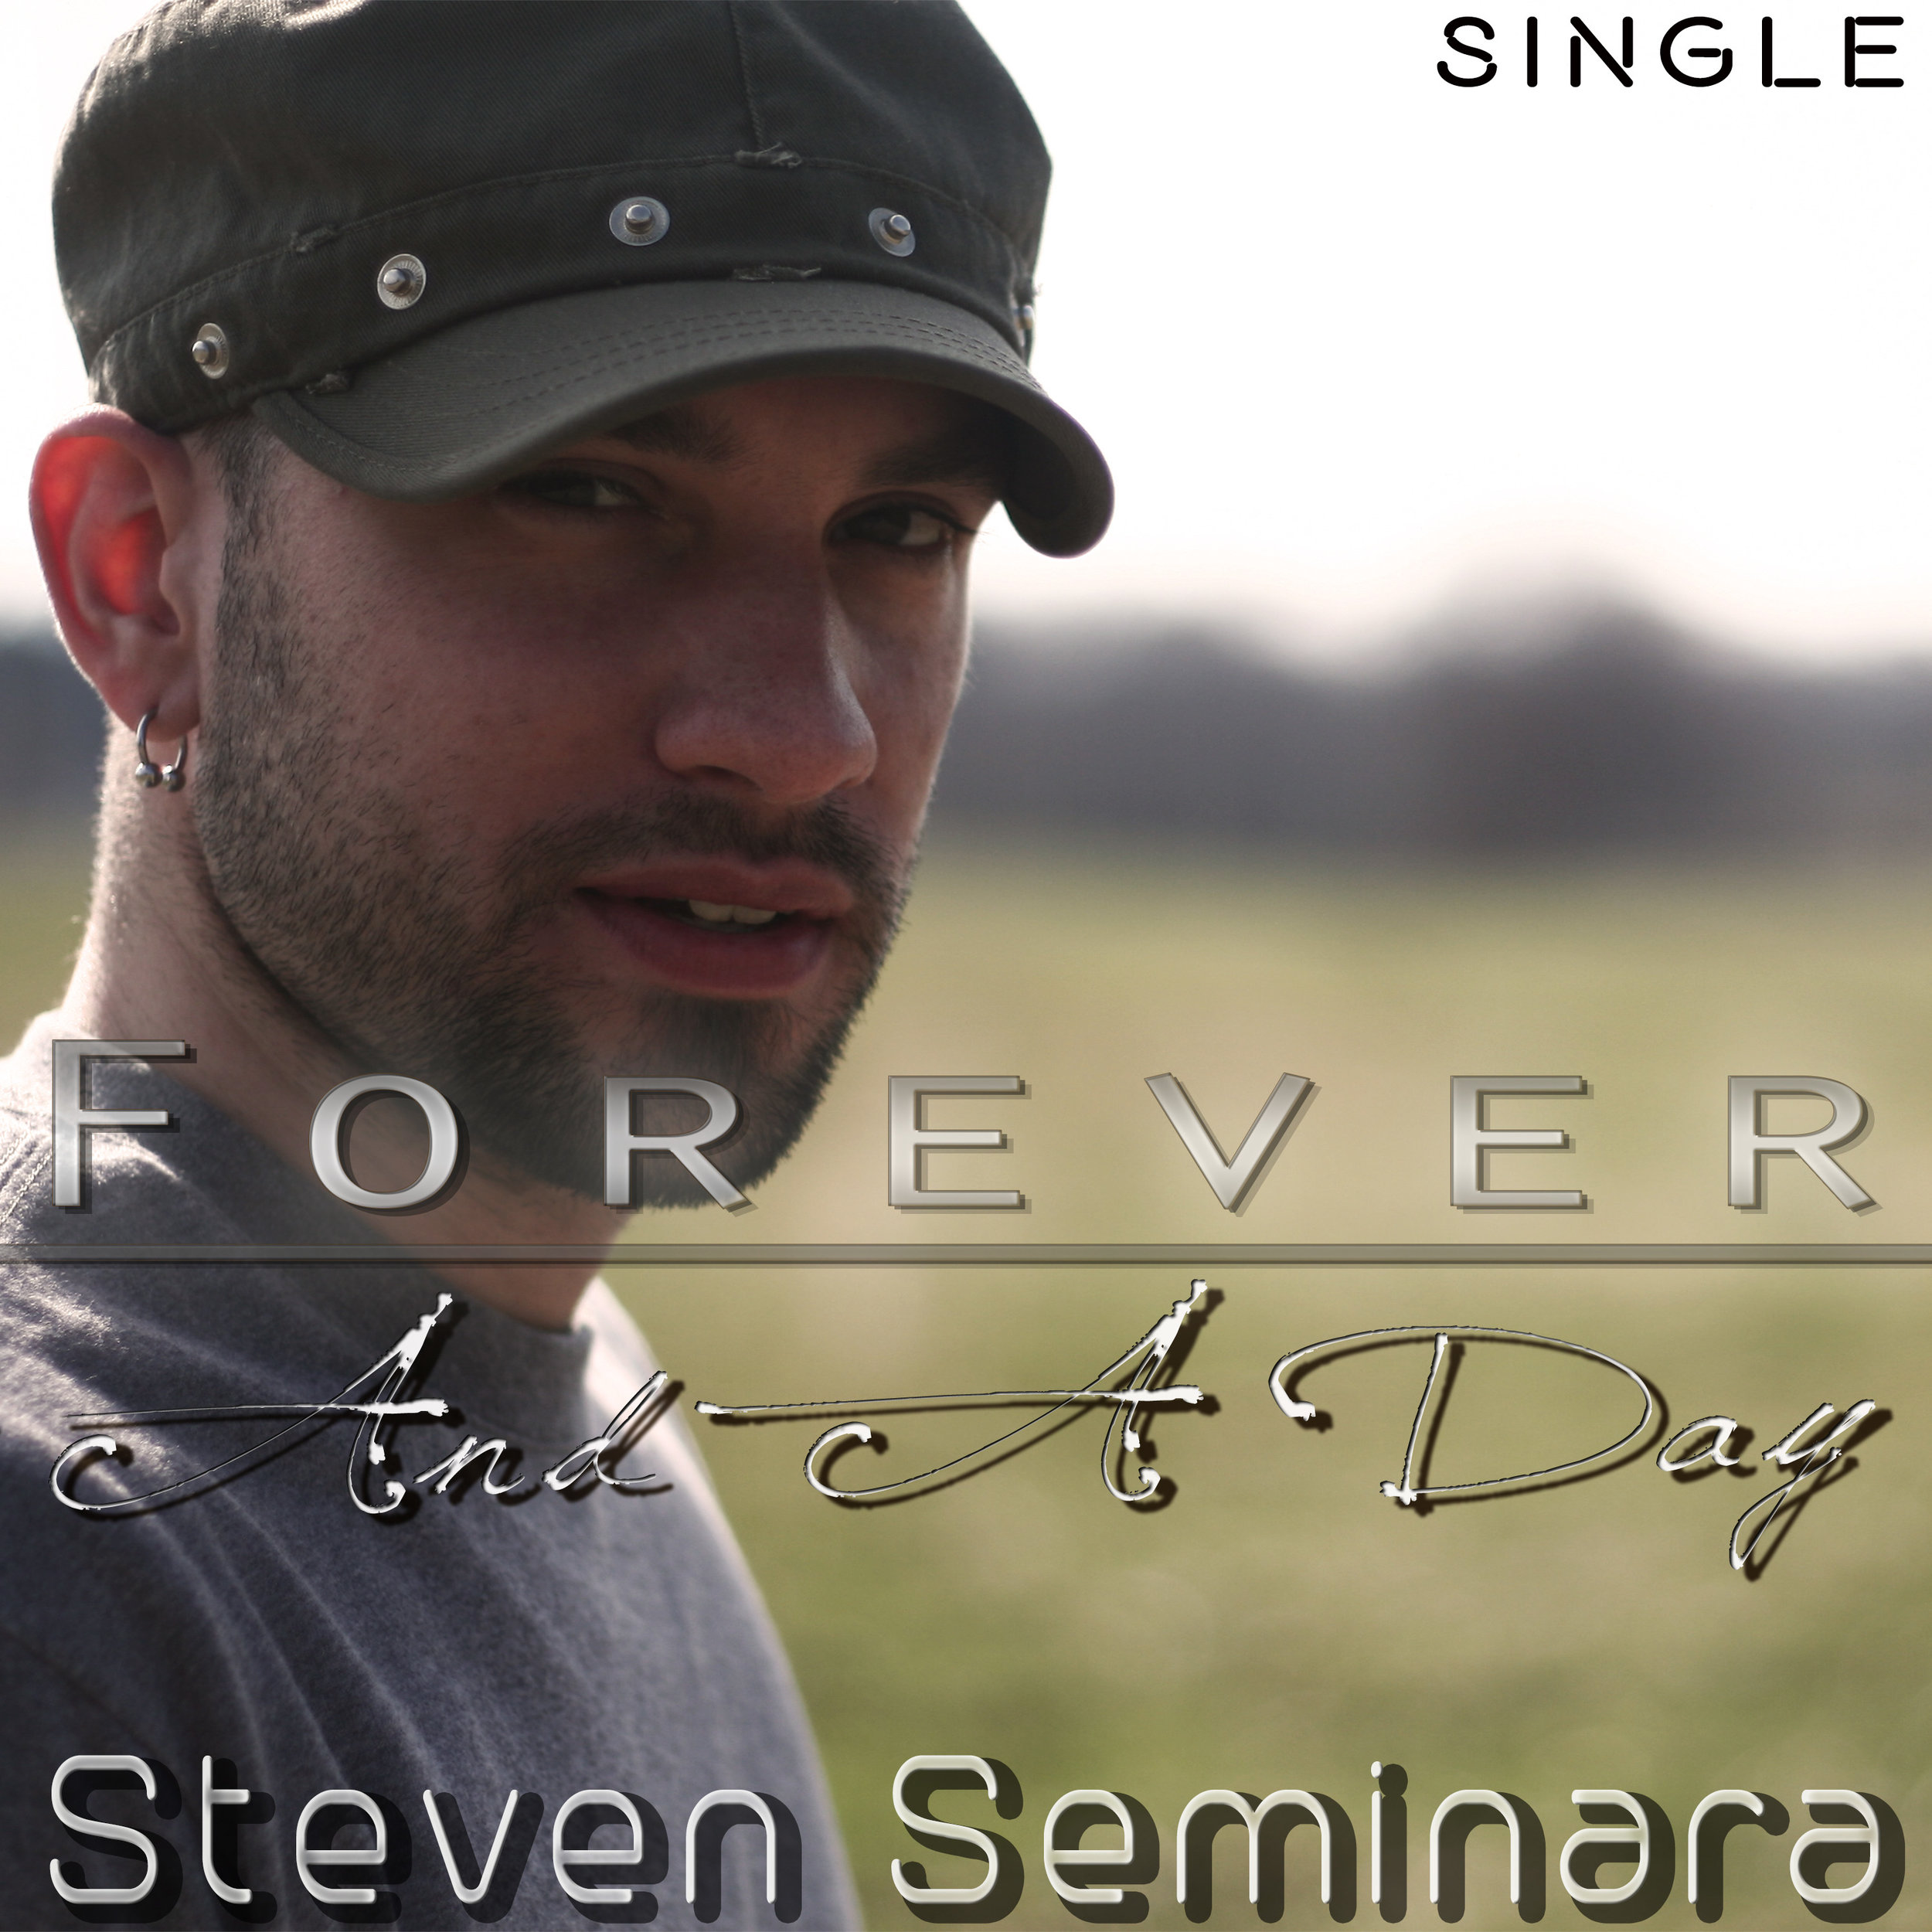 Forever And A Day - (Single)Click picture for purchase!